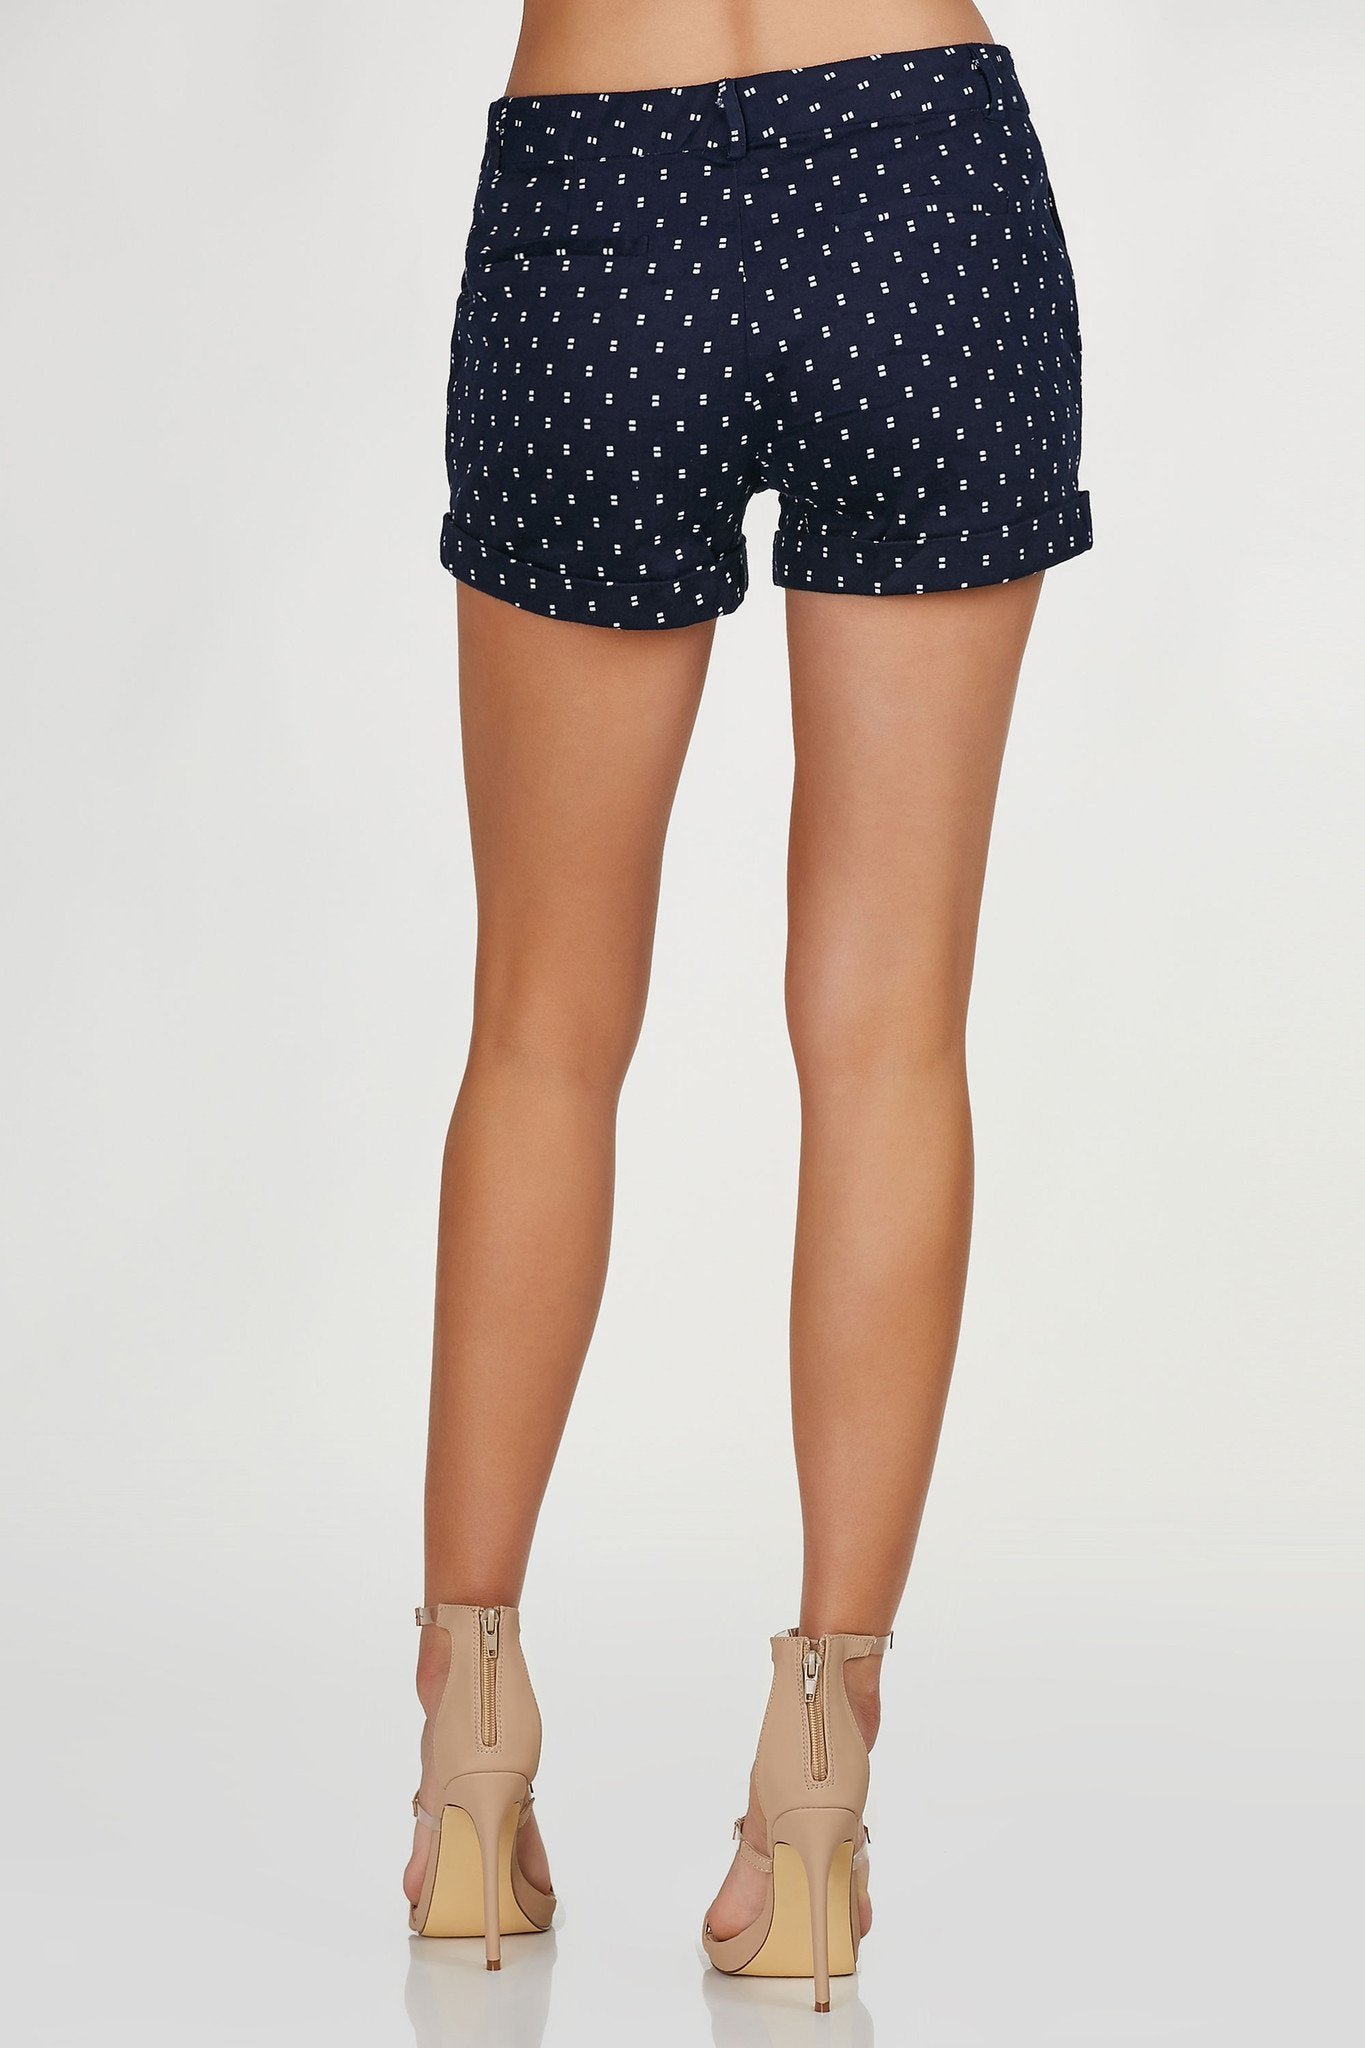 Smooth Sailin' Printed Shorts